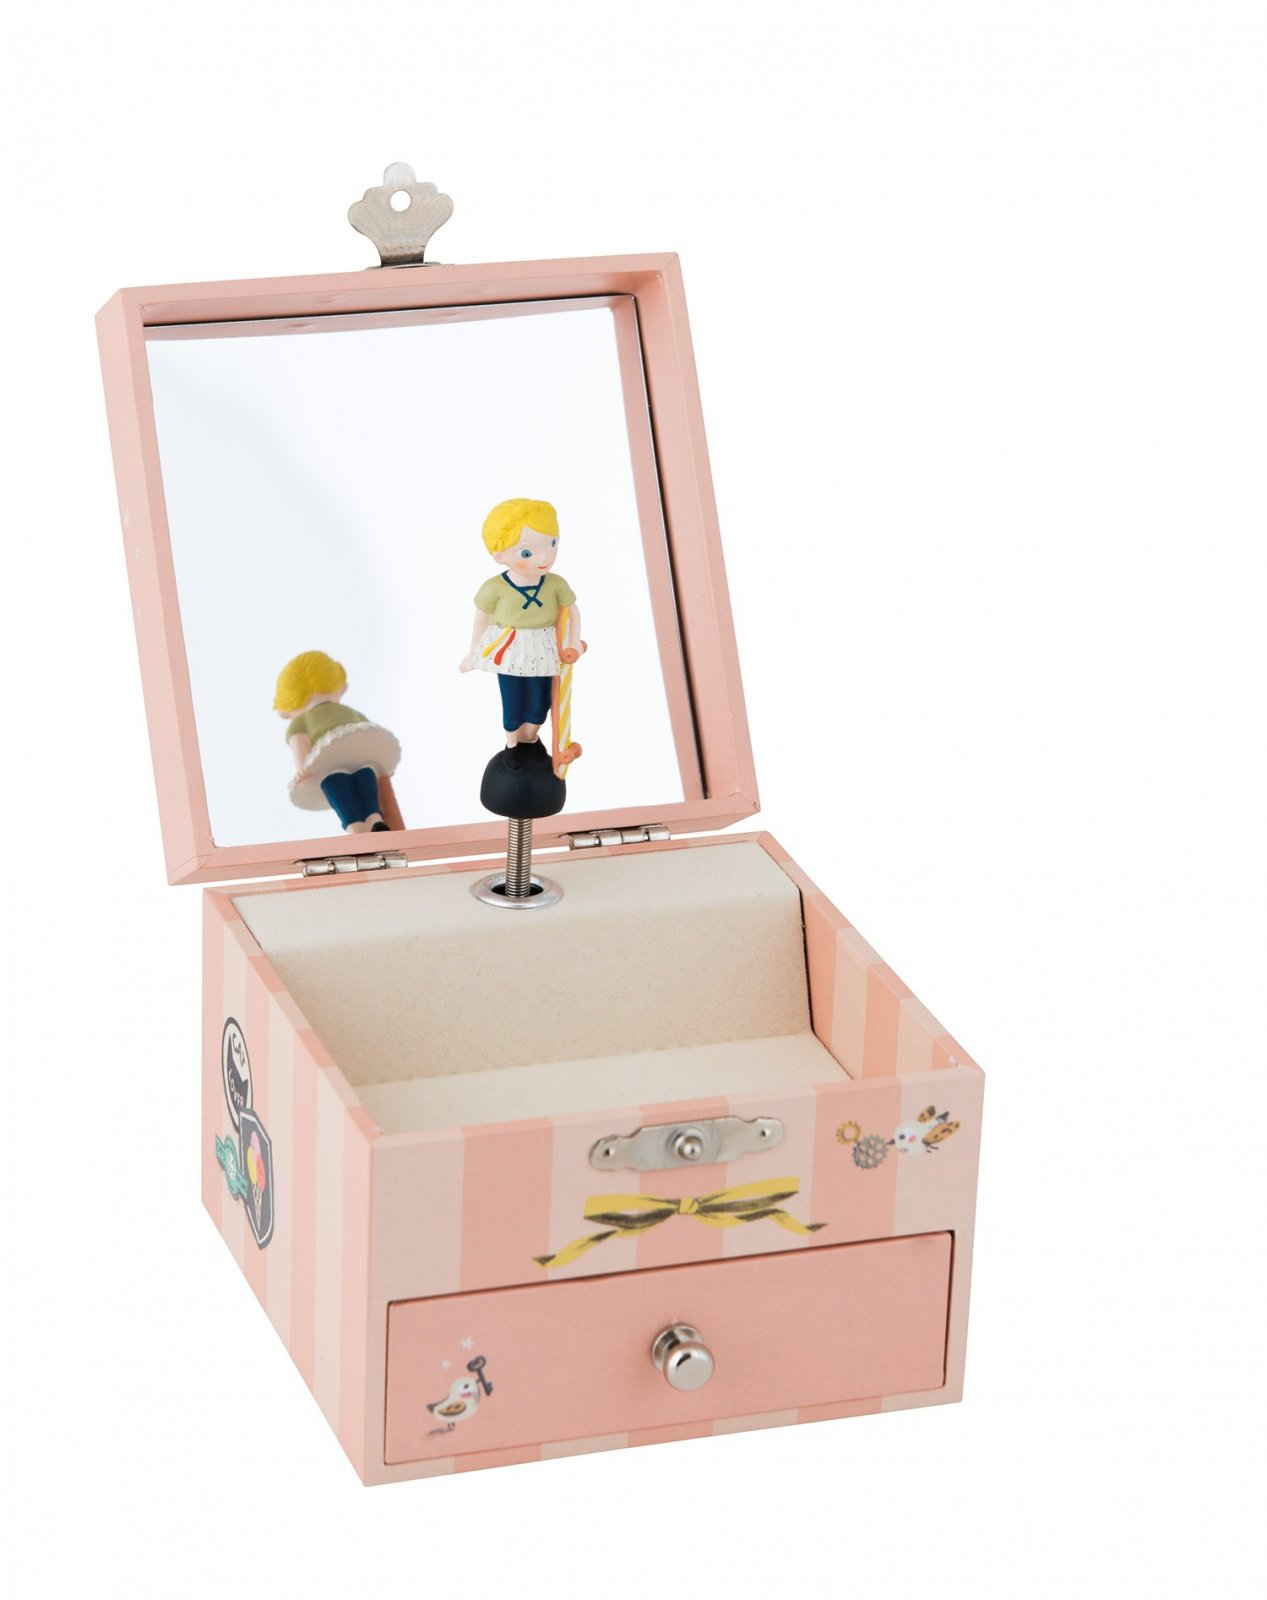 Les Parisiennes Musical Jewelry Box by Moulin Roty